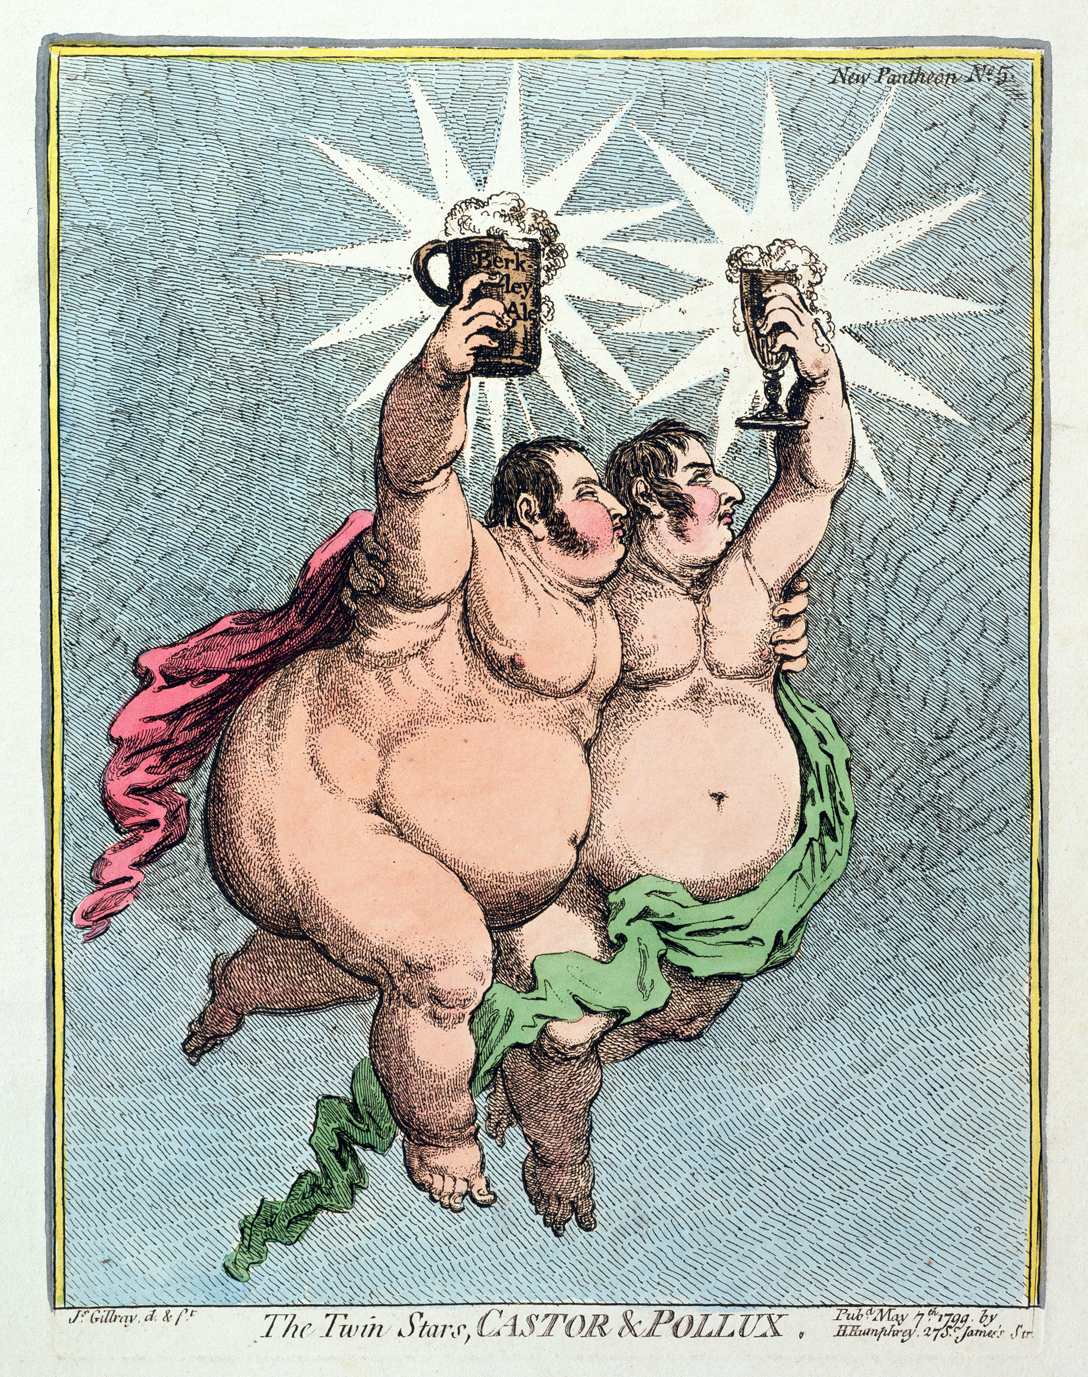 The Twin Stars, Castor & Pollux, by James Gillray, 1799. From a series caricaturing Whig Party members as pagan deities.